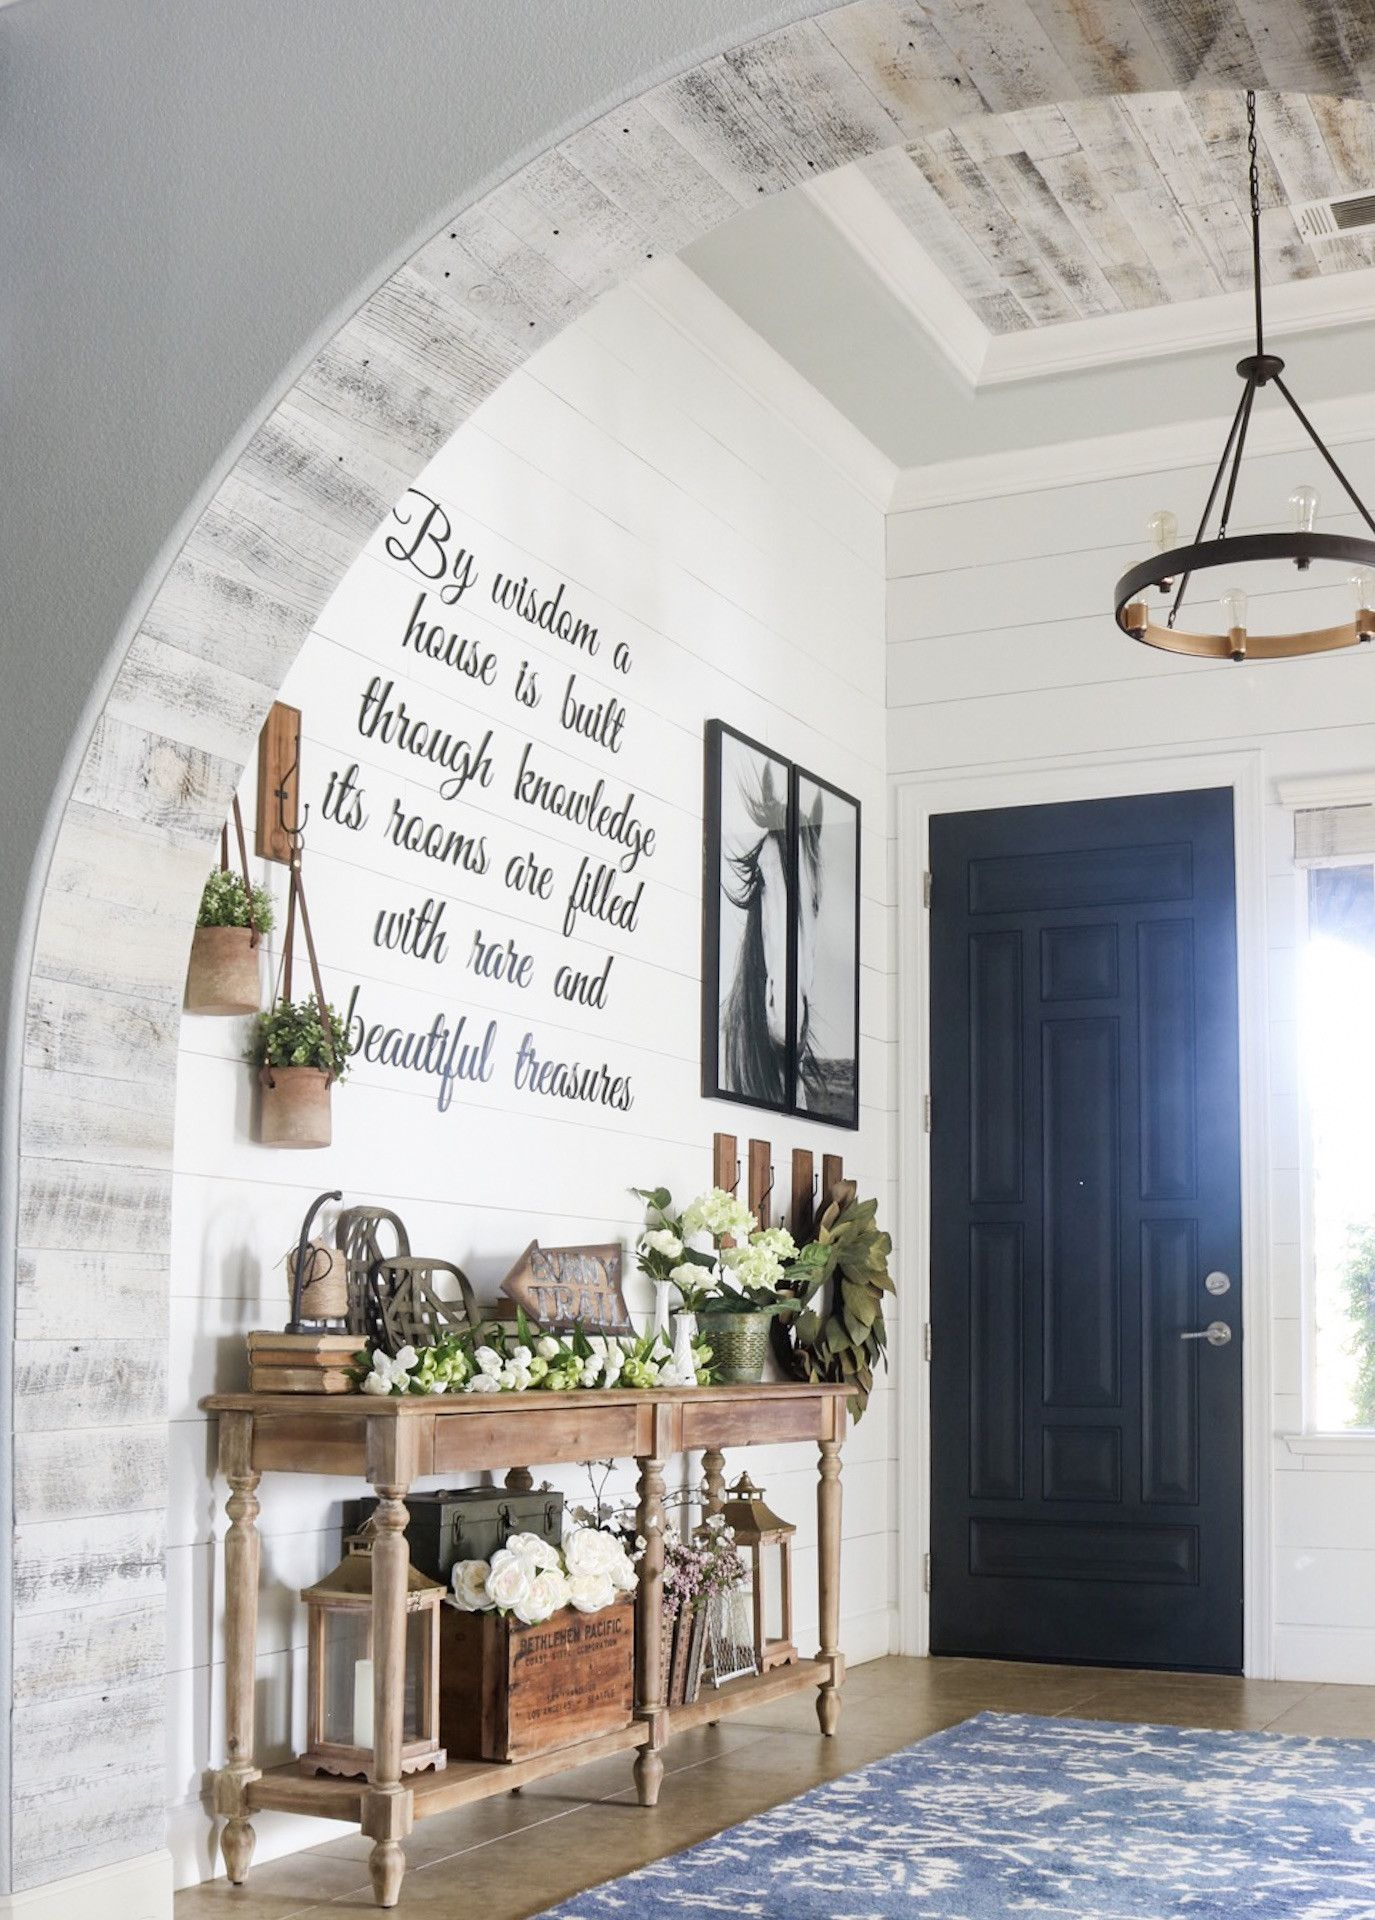 7 French Farmhouse Designs | Farmhouse interior, Farmhouse design ...